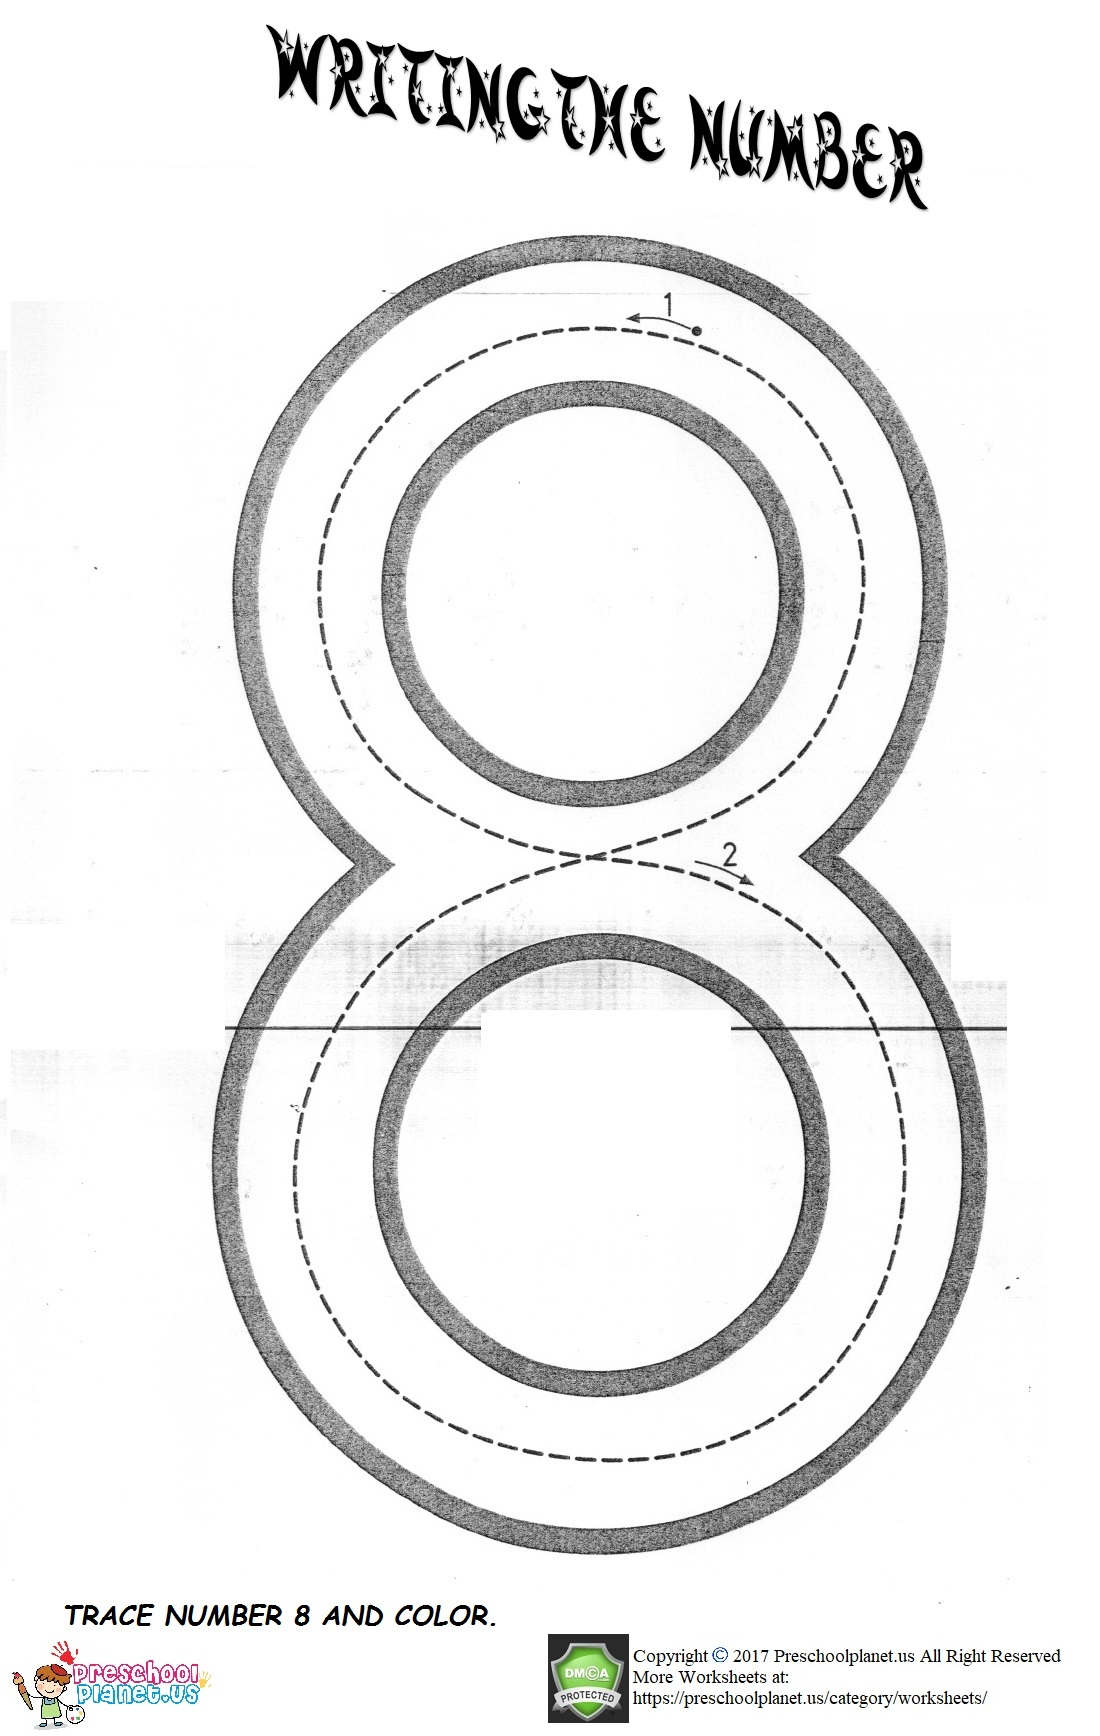 Number 8 Worksheet Preschoolplanet